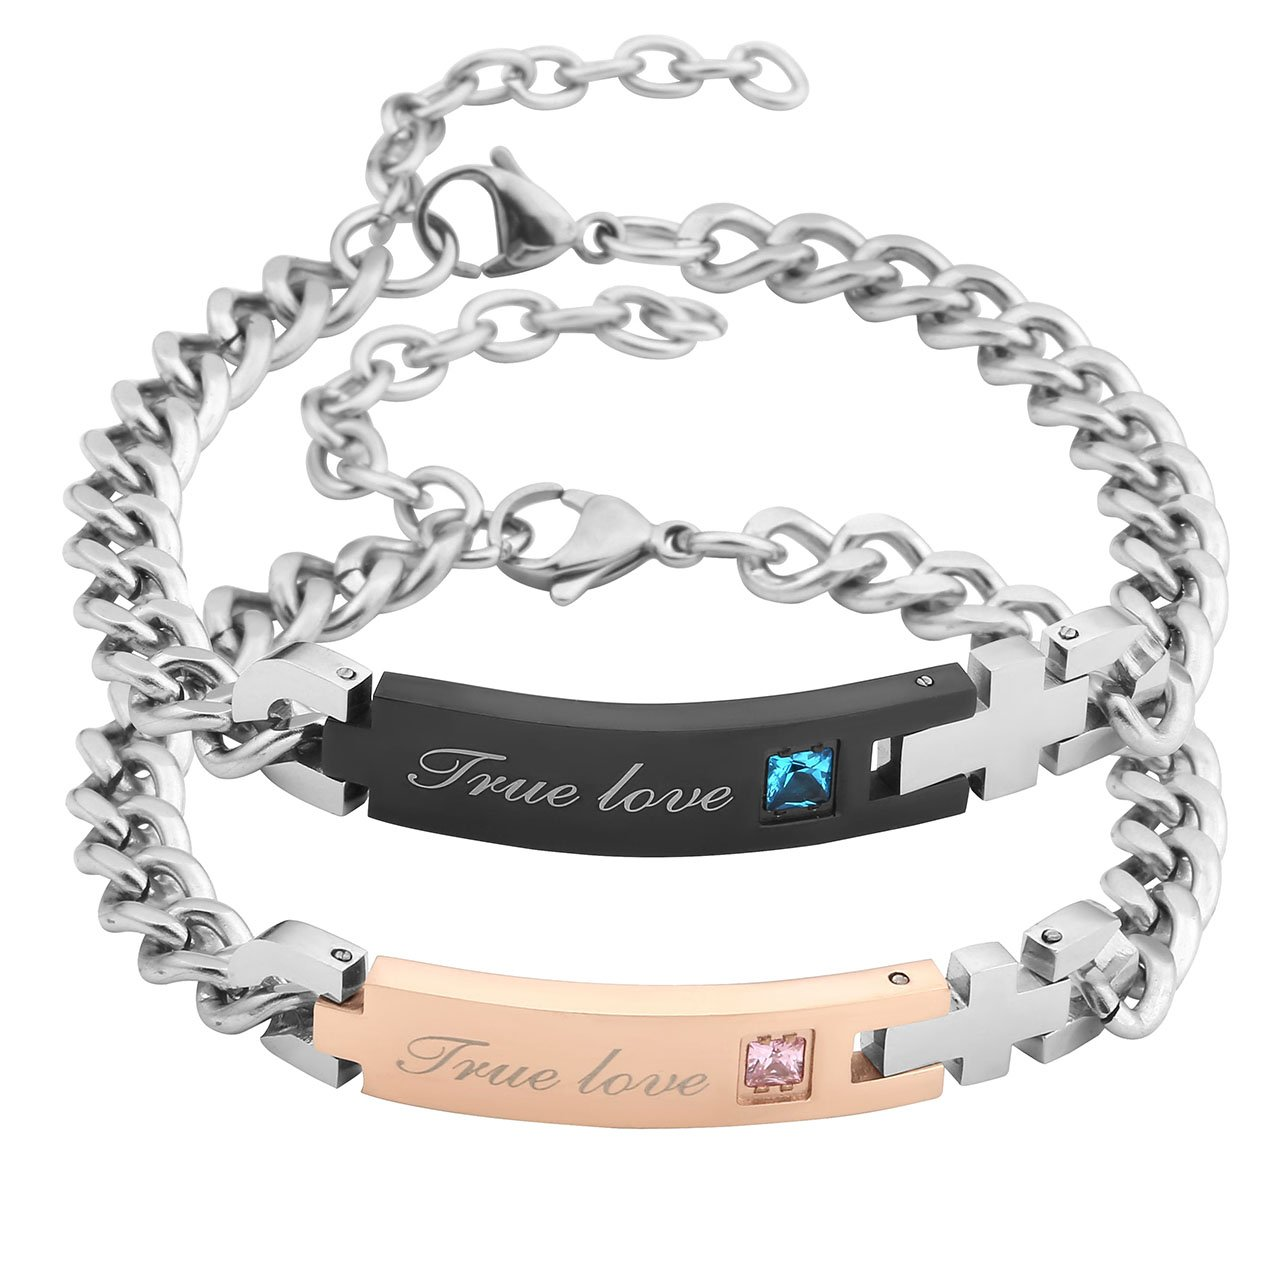 Jovivi Men Women Stainless Steel CZ True Love Couples Bracelets Matching Set in Gift Box